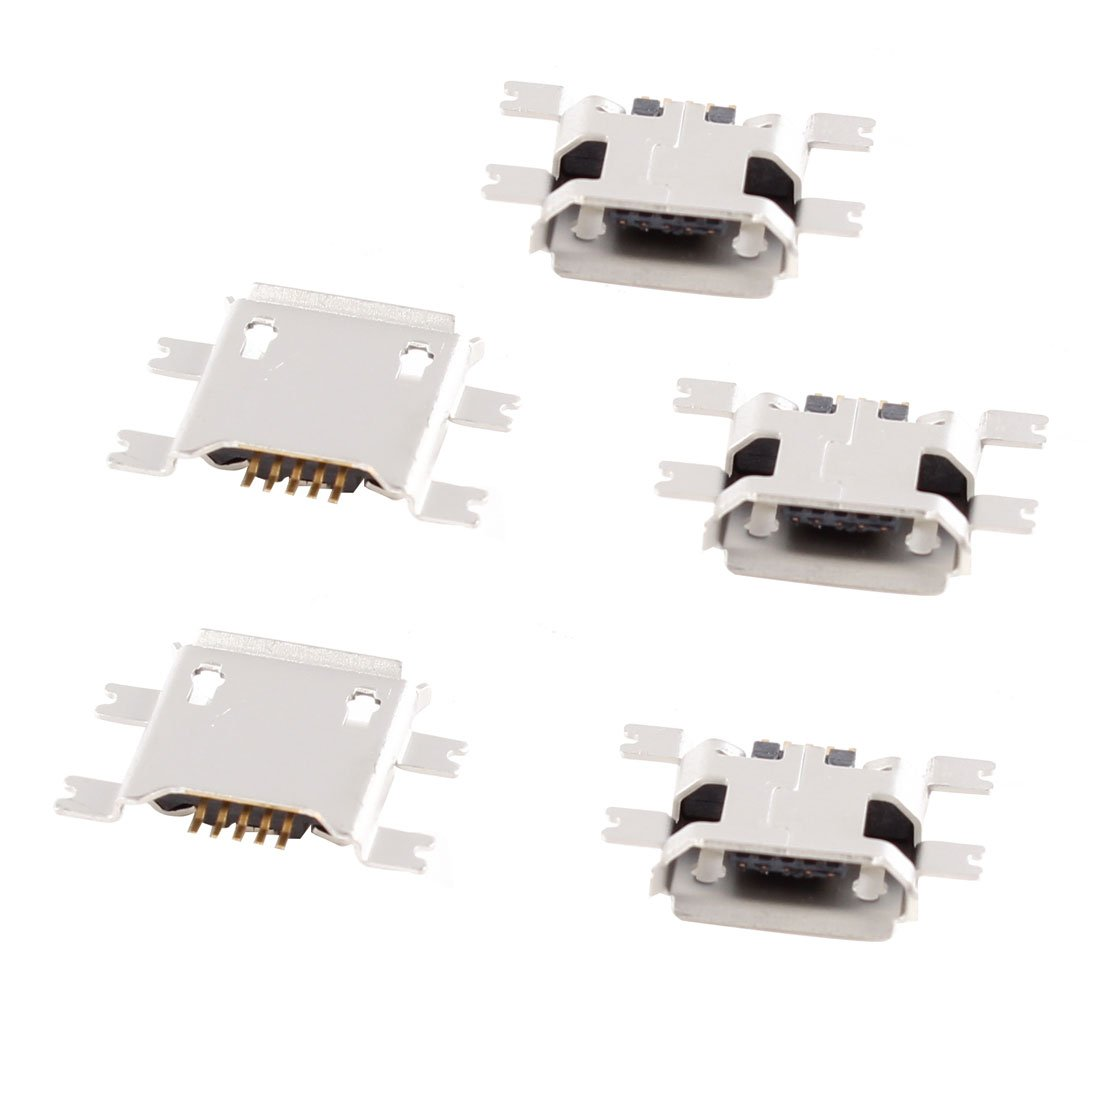 uxcell 5 Pcs Micro USB Type B Female Socket 180 Degree 5-Pin SMD SMT Jack Connector